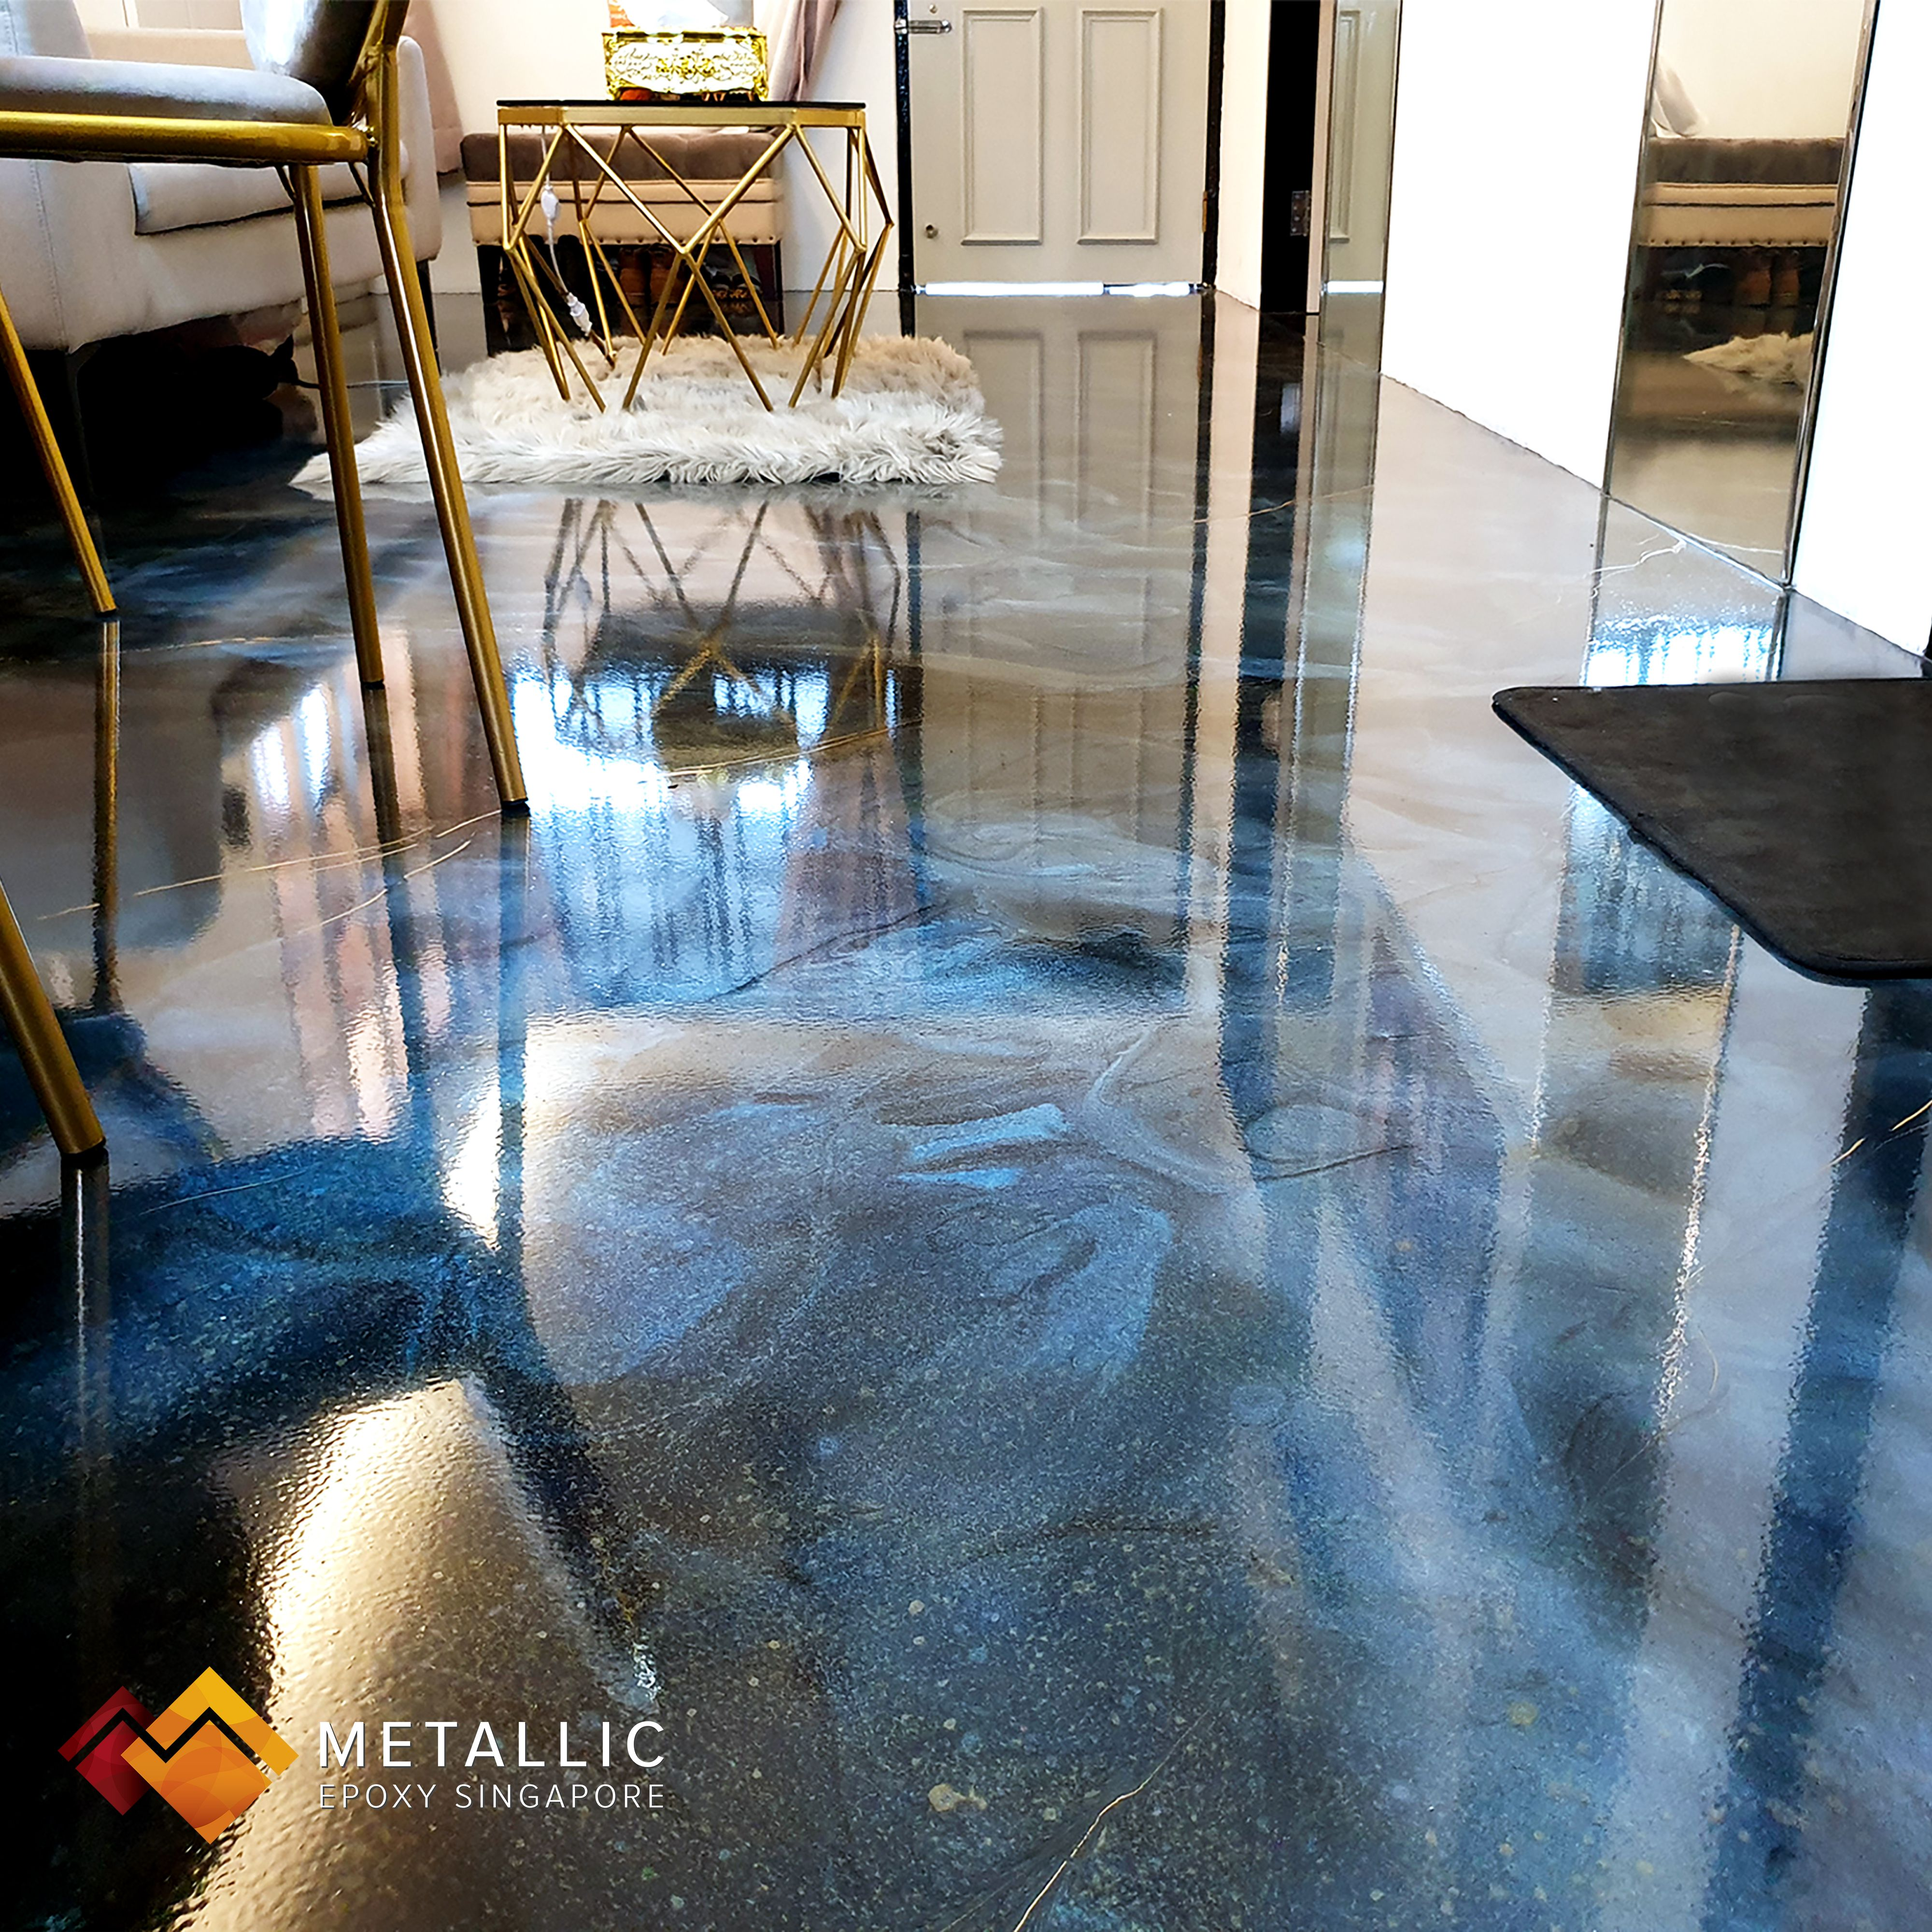 An Enchanting Blue Galaxy Theme Flooring Design For This Living Room Brings Calm And Pleasing Vibes Metallic E Floor Design Metallic Epoxy Floor Galaxy Theme Living room epoxy floors in homes